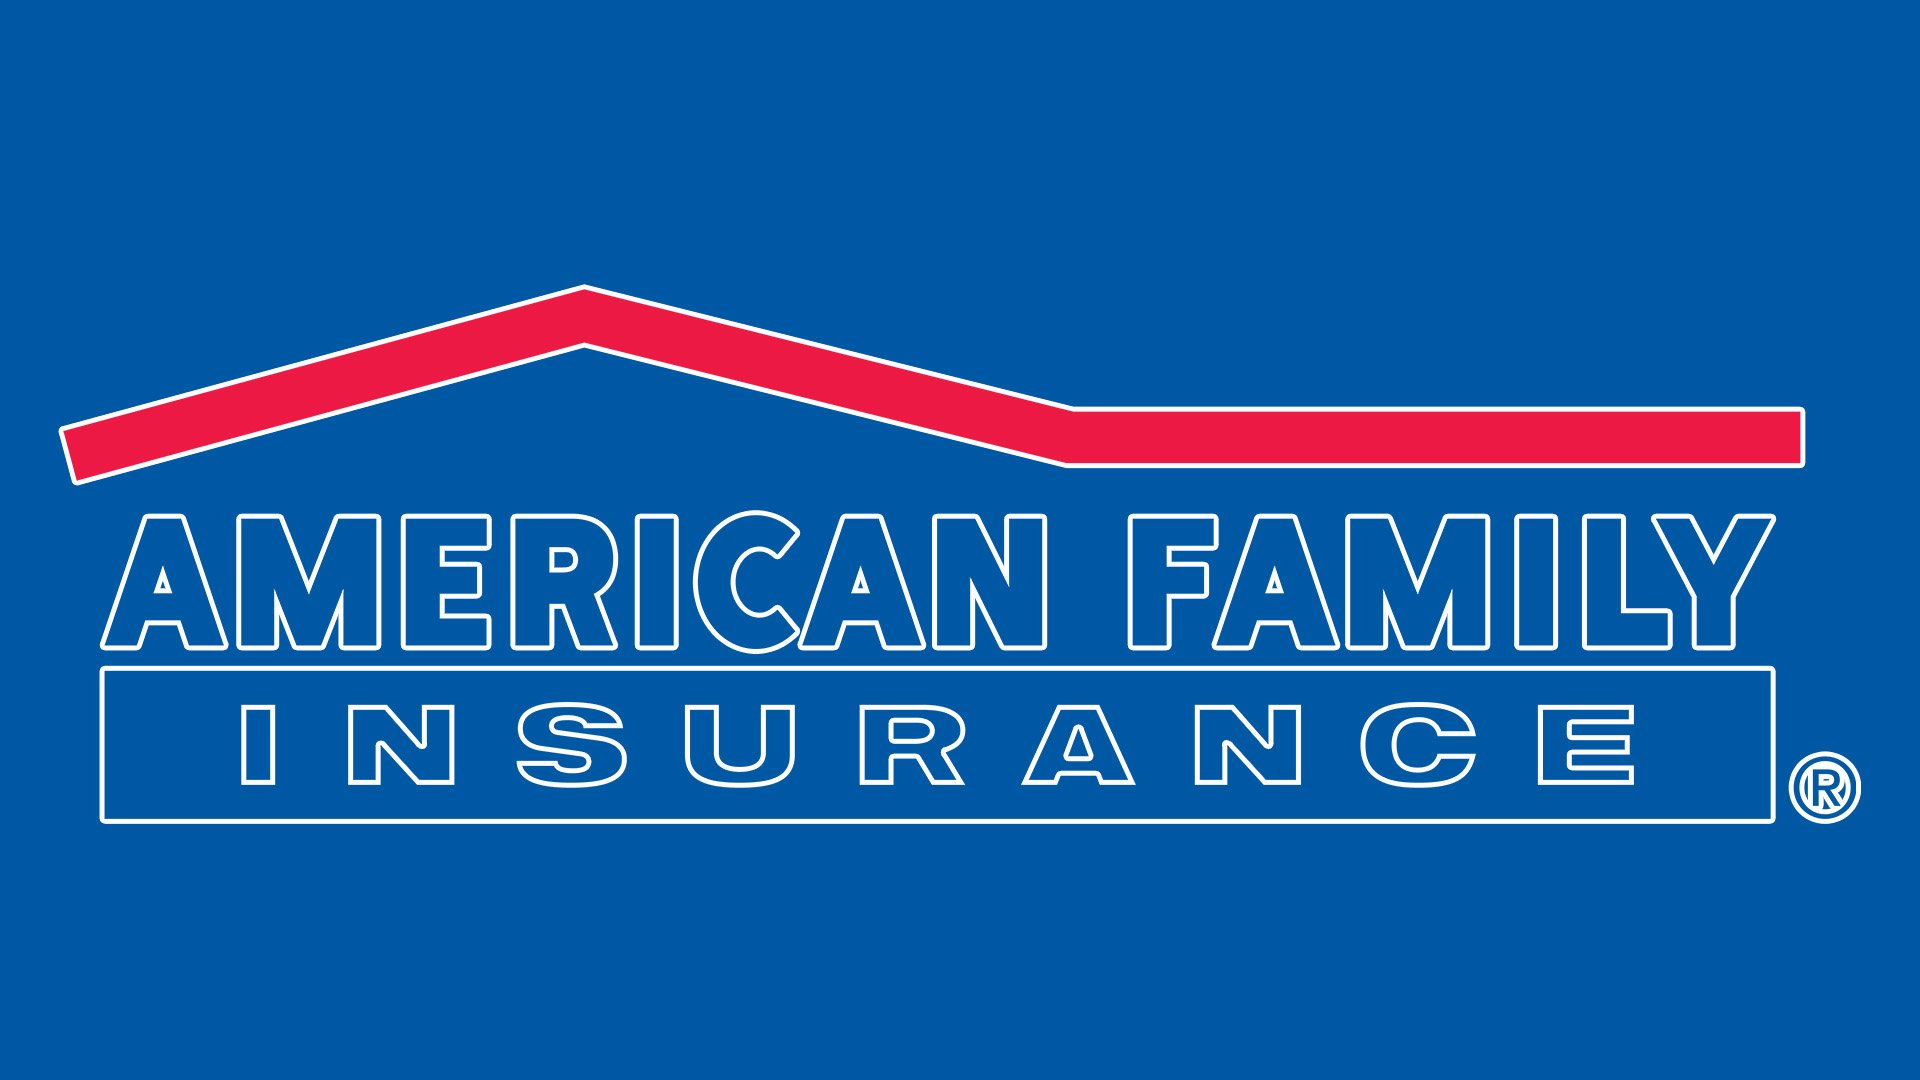 Farmers Auto Insurance >> Meaning American Family Insurance logo and symbol | history and evolution